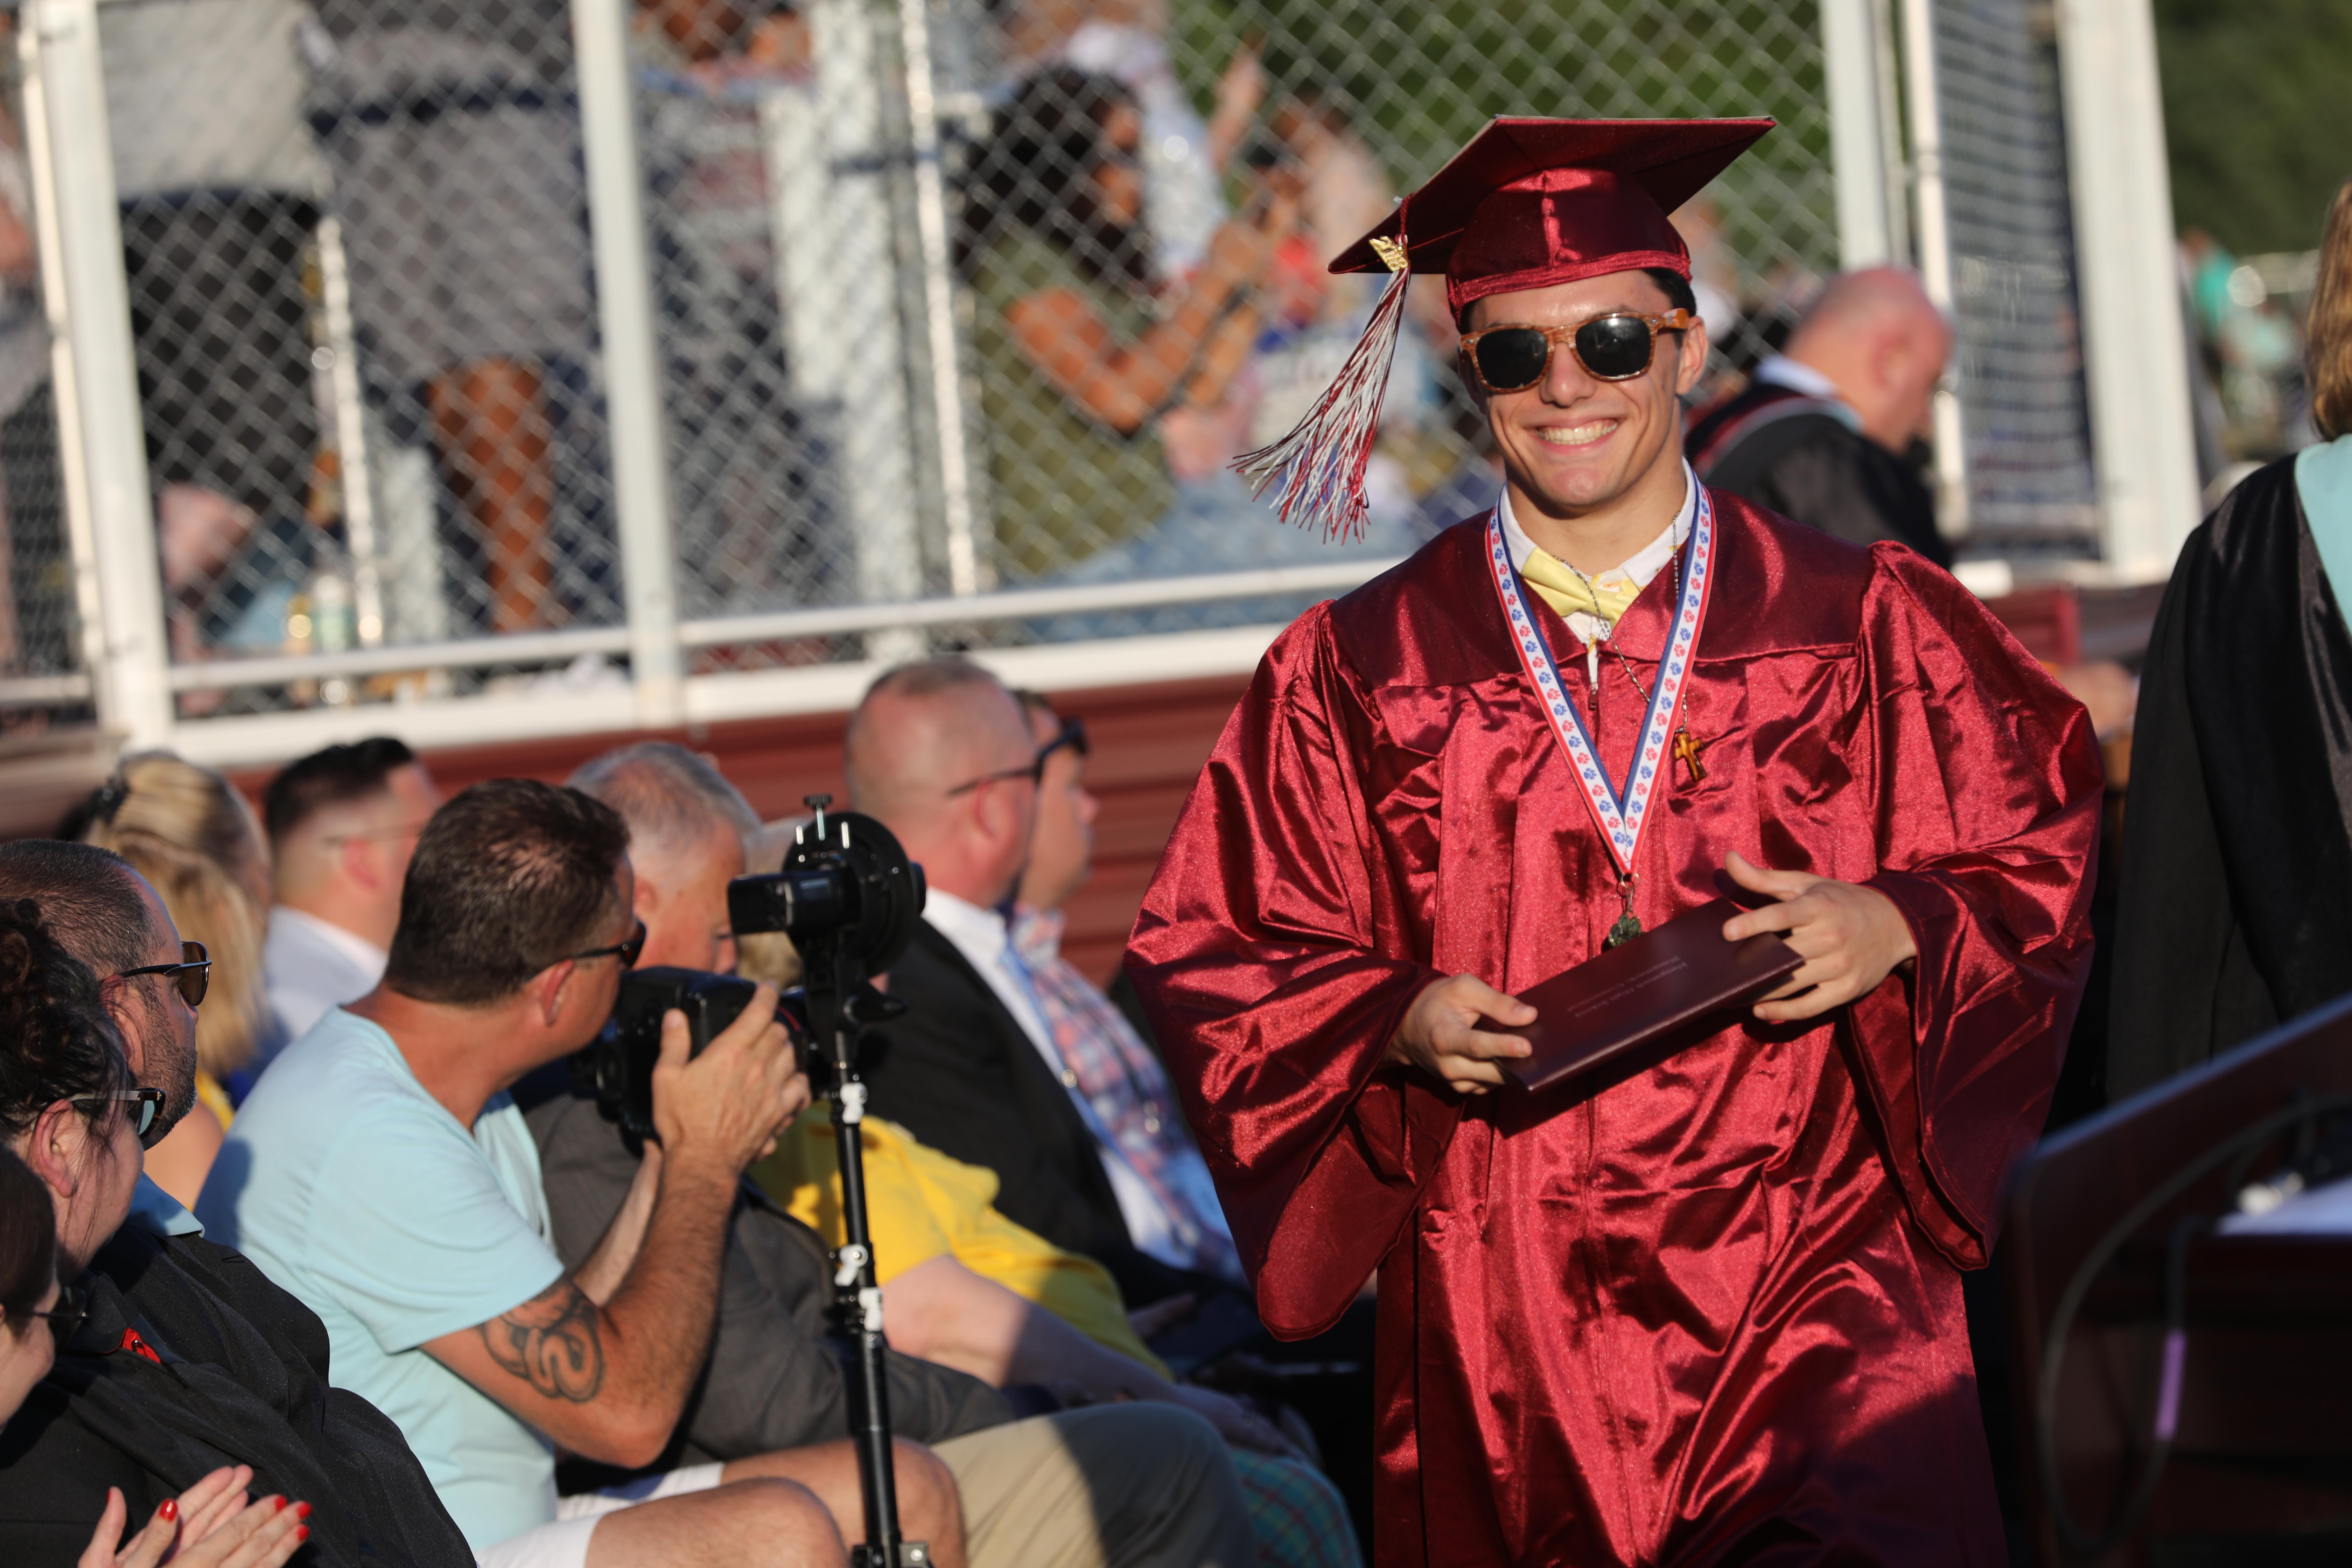 Student walking across stage at graduation